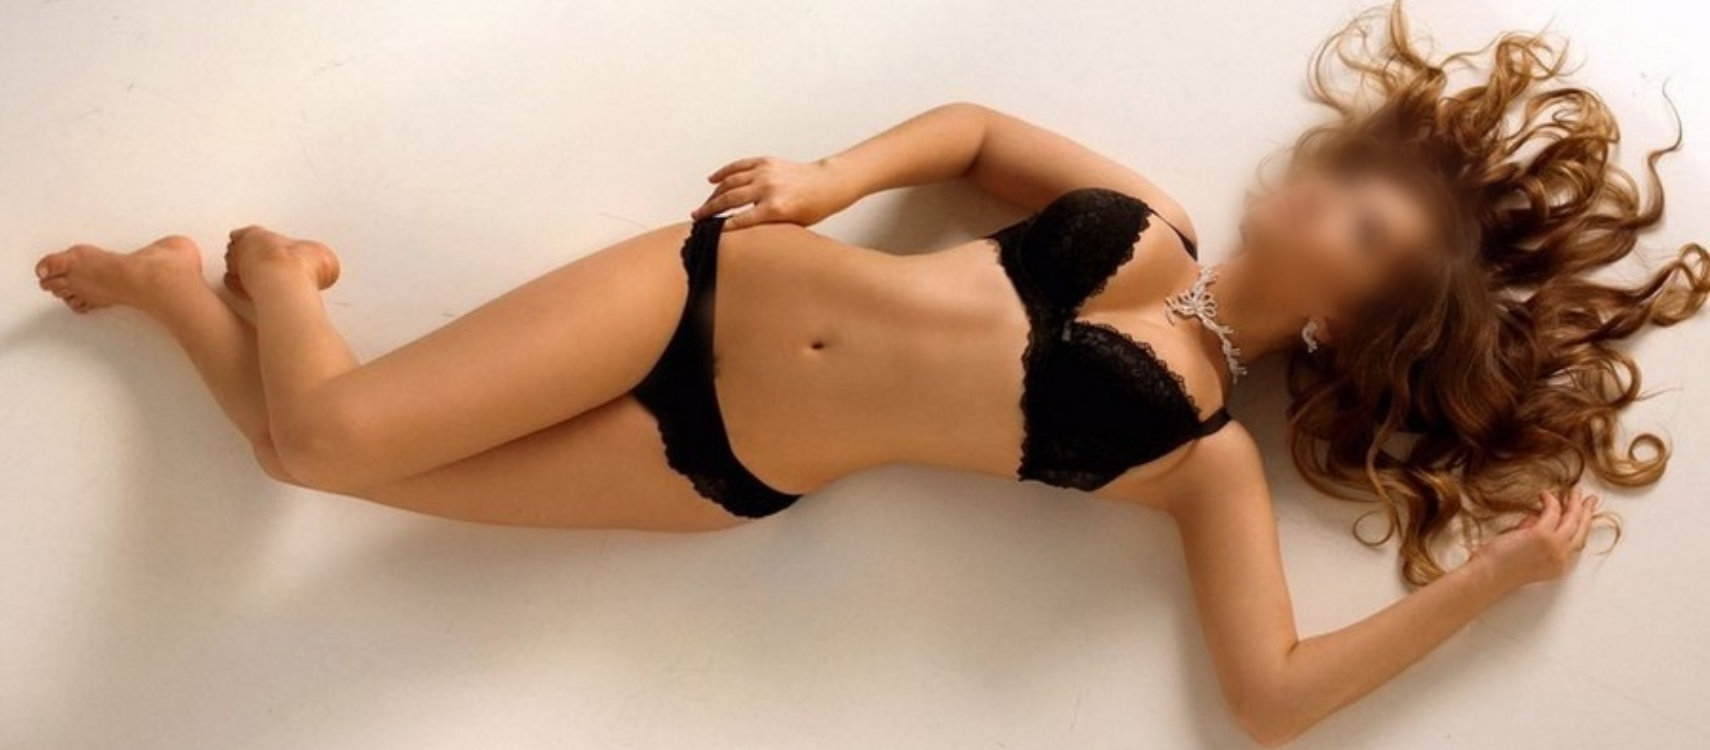 Birmingham independent escorts